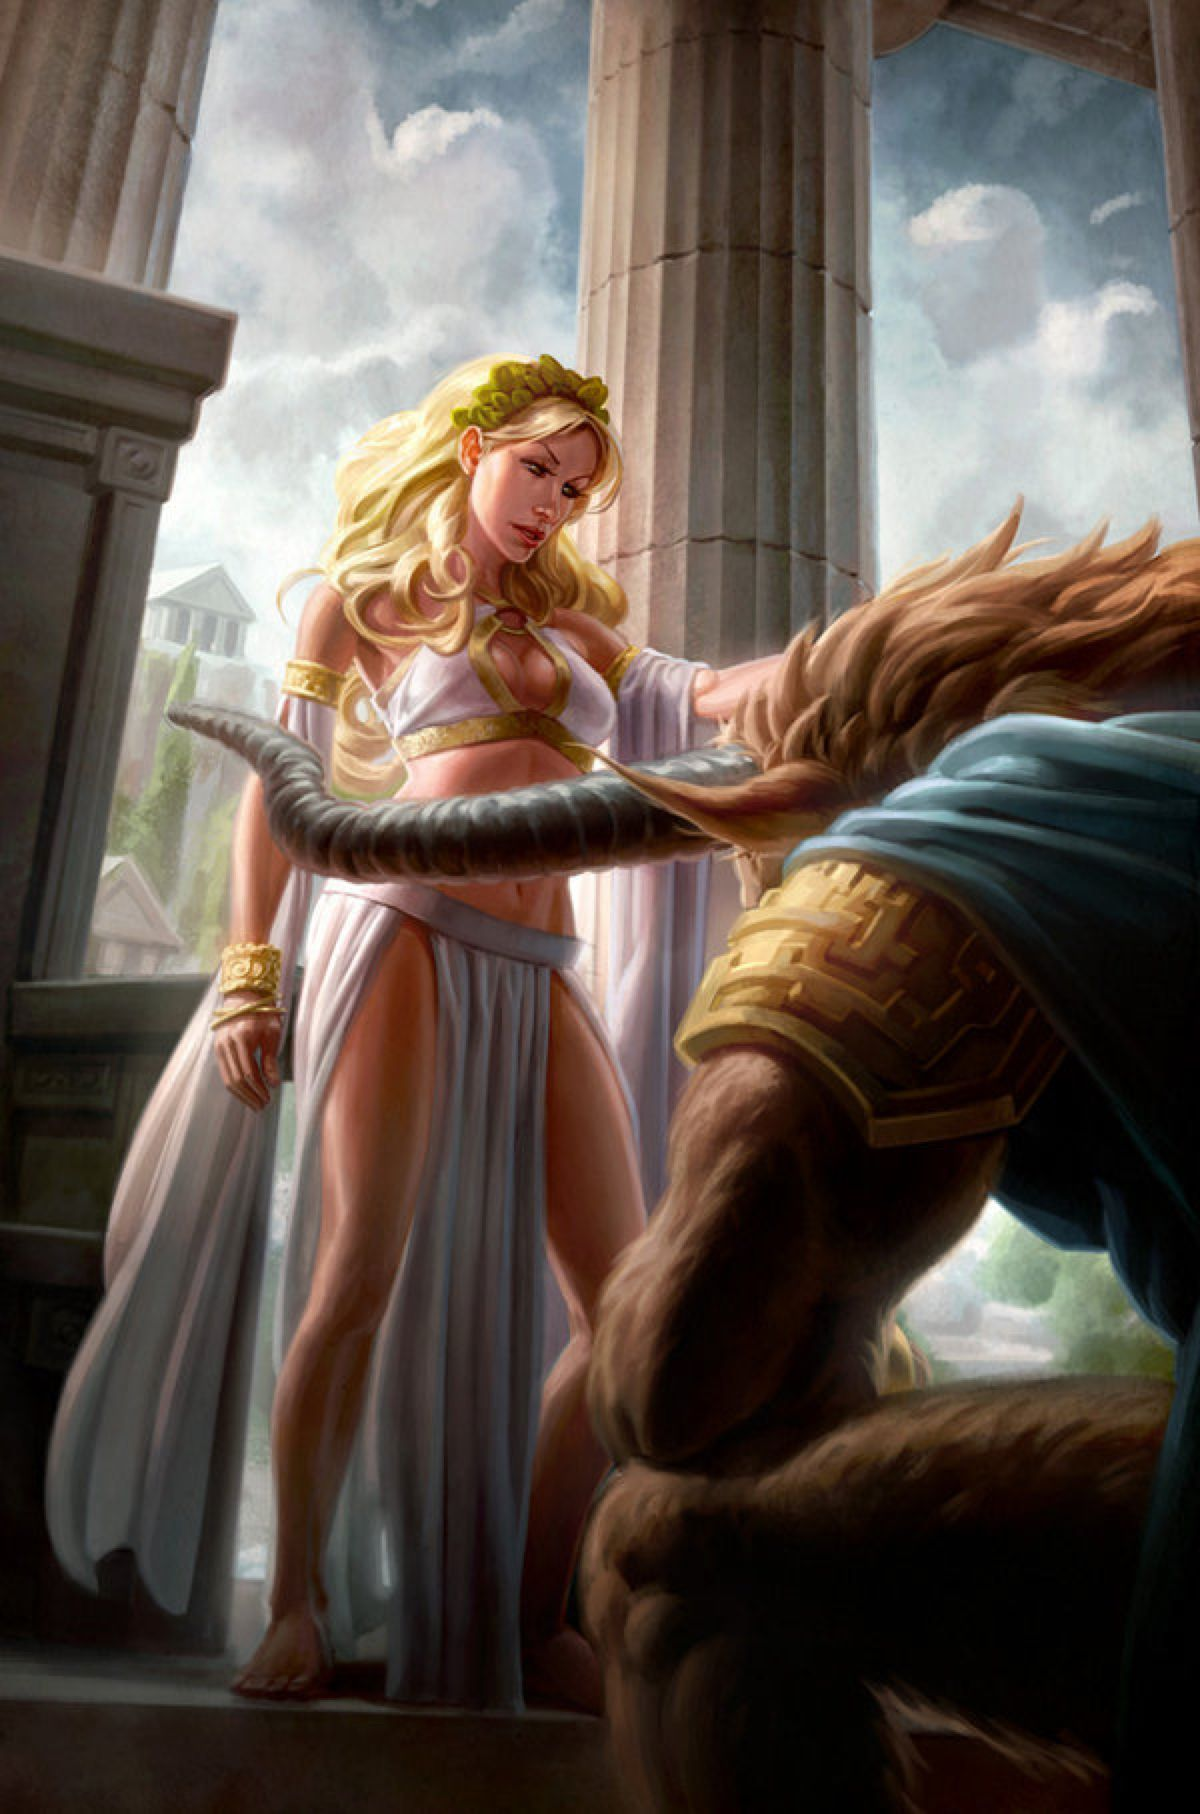 Grimm Fairy Tales Myths And Legends 17 By Capprotti On